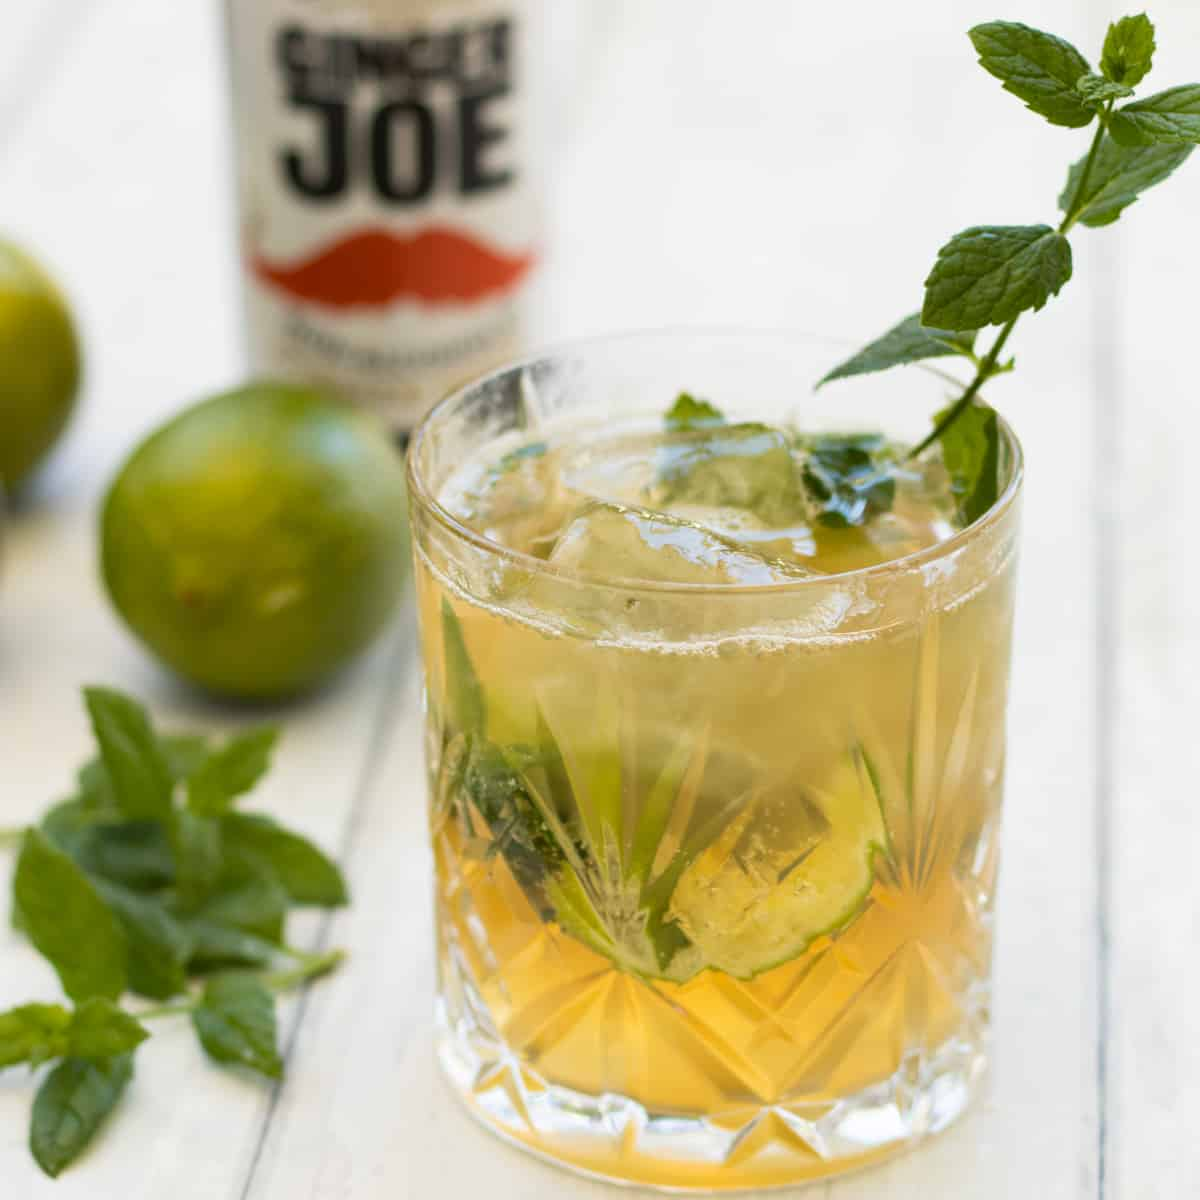 ginger beer mocktail decorated with a sprig of mint with a bottle of ginger beer in the background